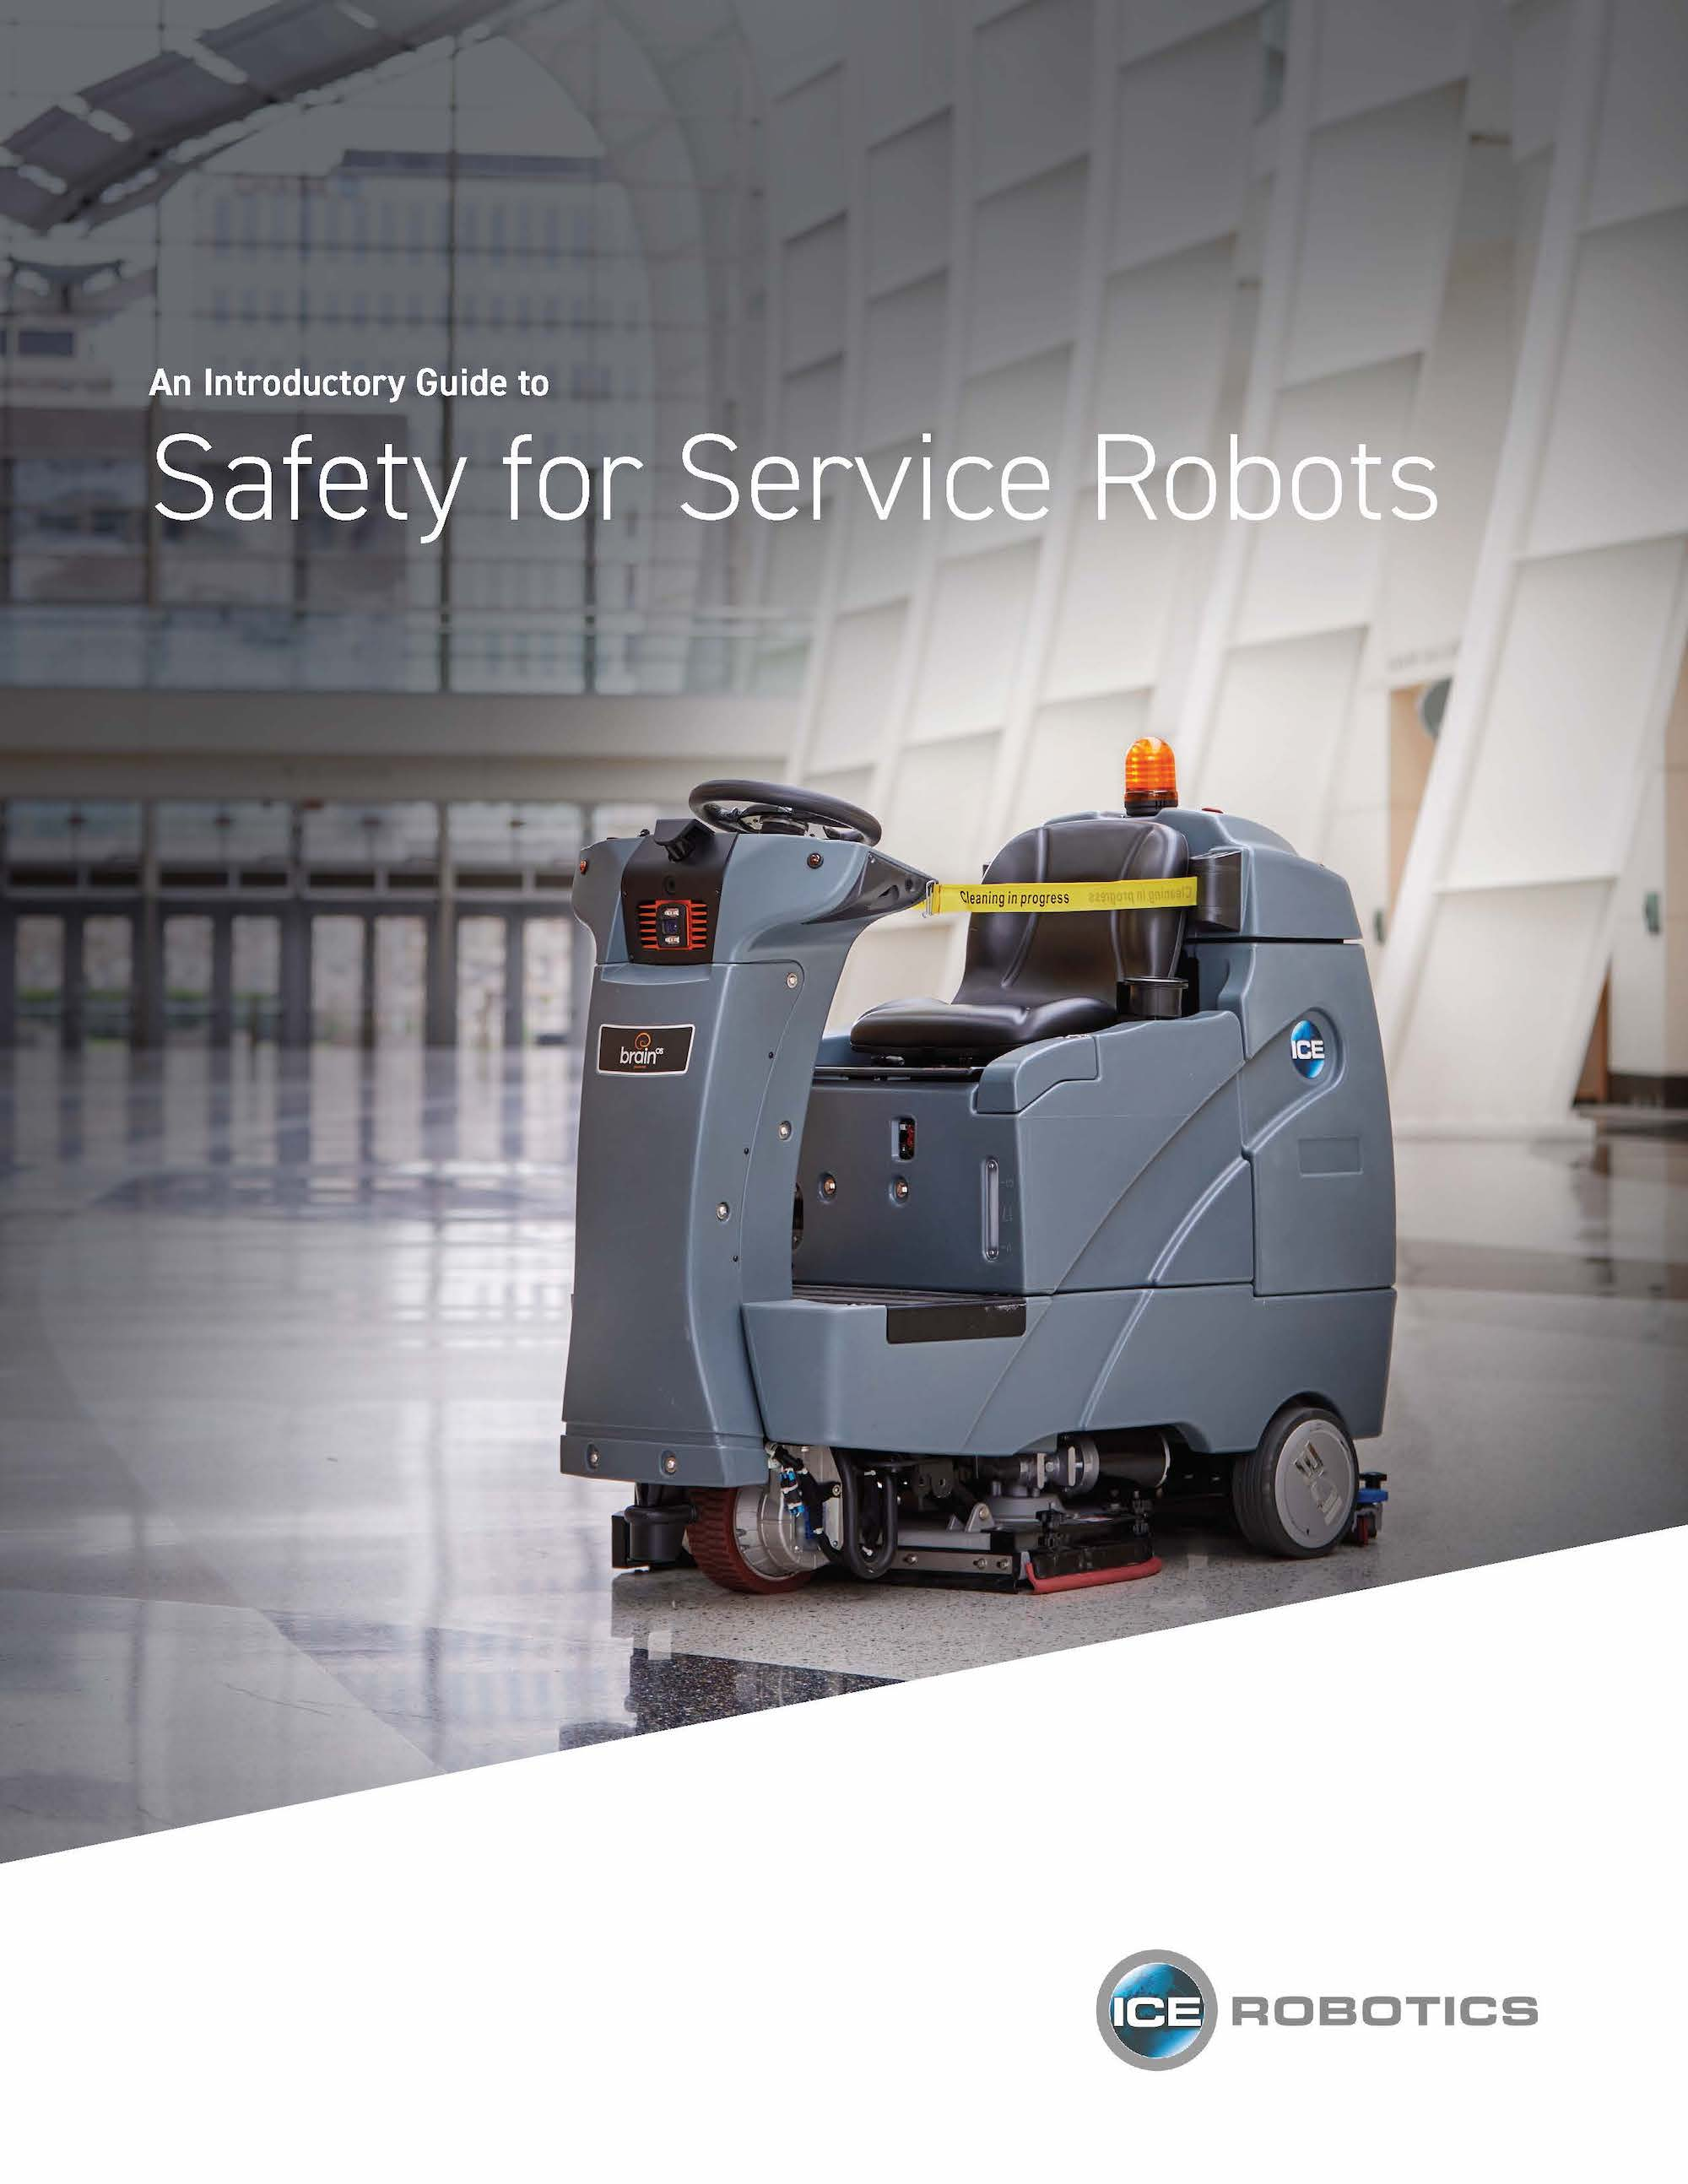 An Introductory Guide to Safety for Service Robots